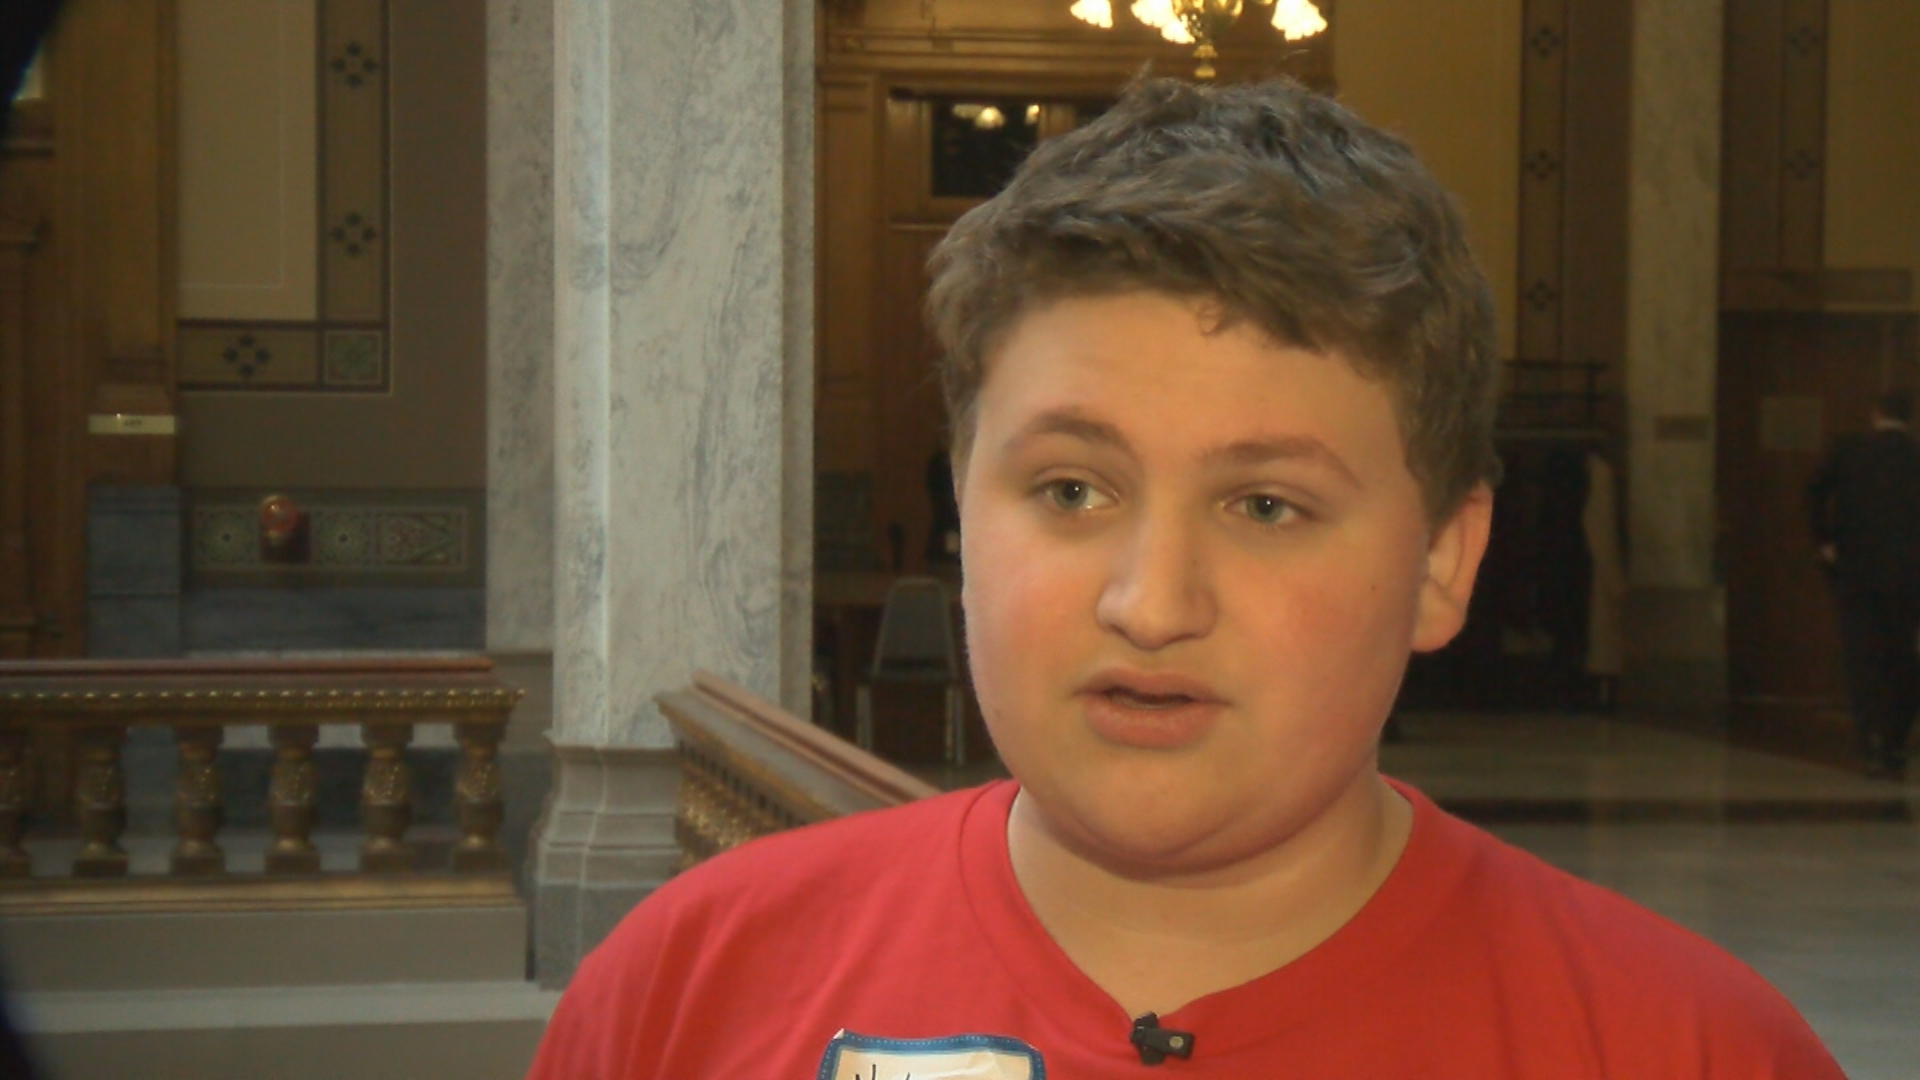 Noblesville students call for gun safety laws